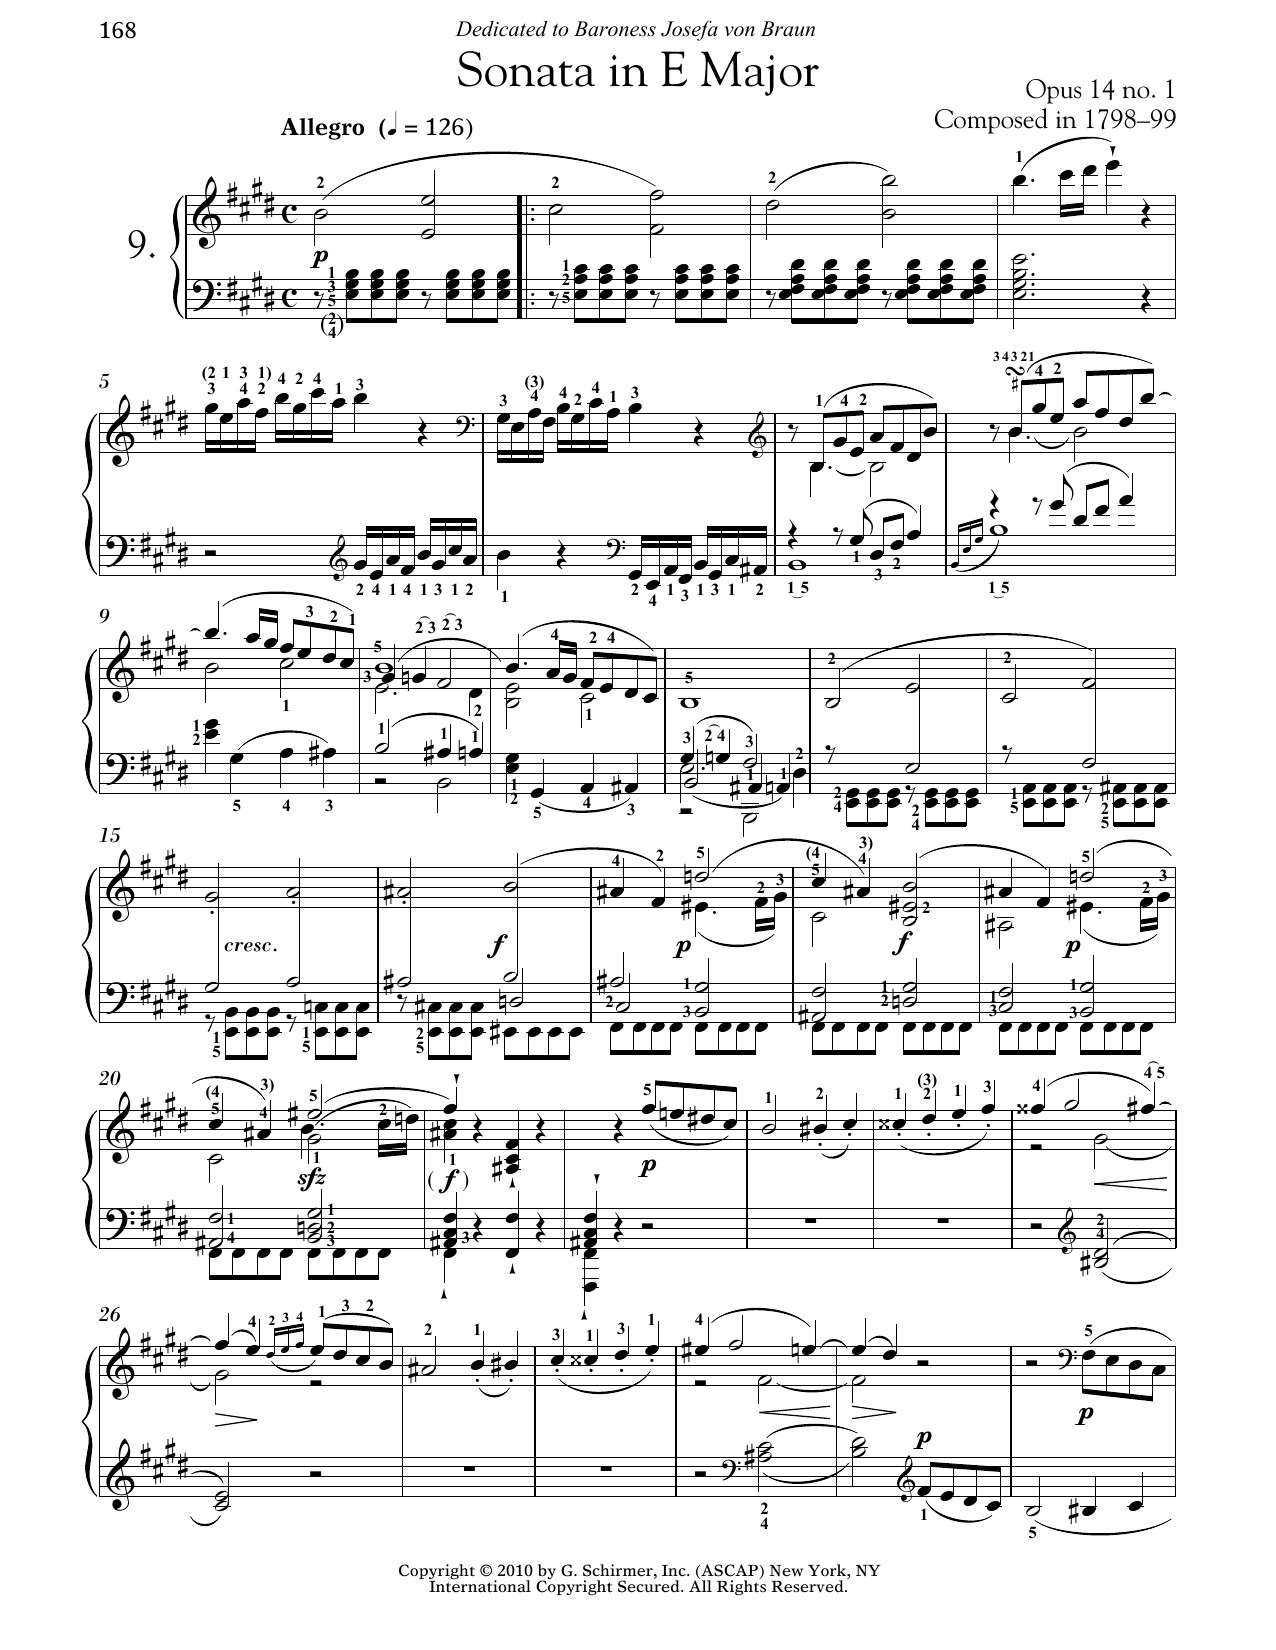 Download Ludwig van Beethoven 'Piano Sonata No. 9 In E Major, Op. 14, No. 1' Digital Sheet Music Notes & Chords and start playing in minutes